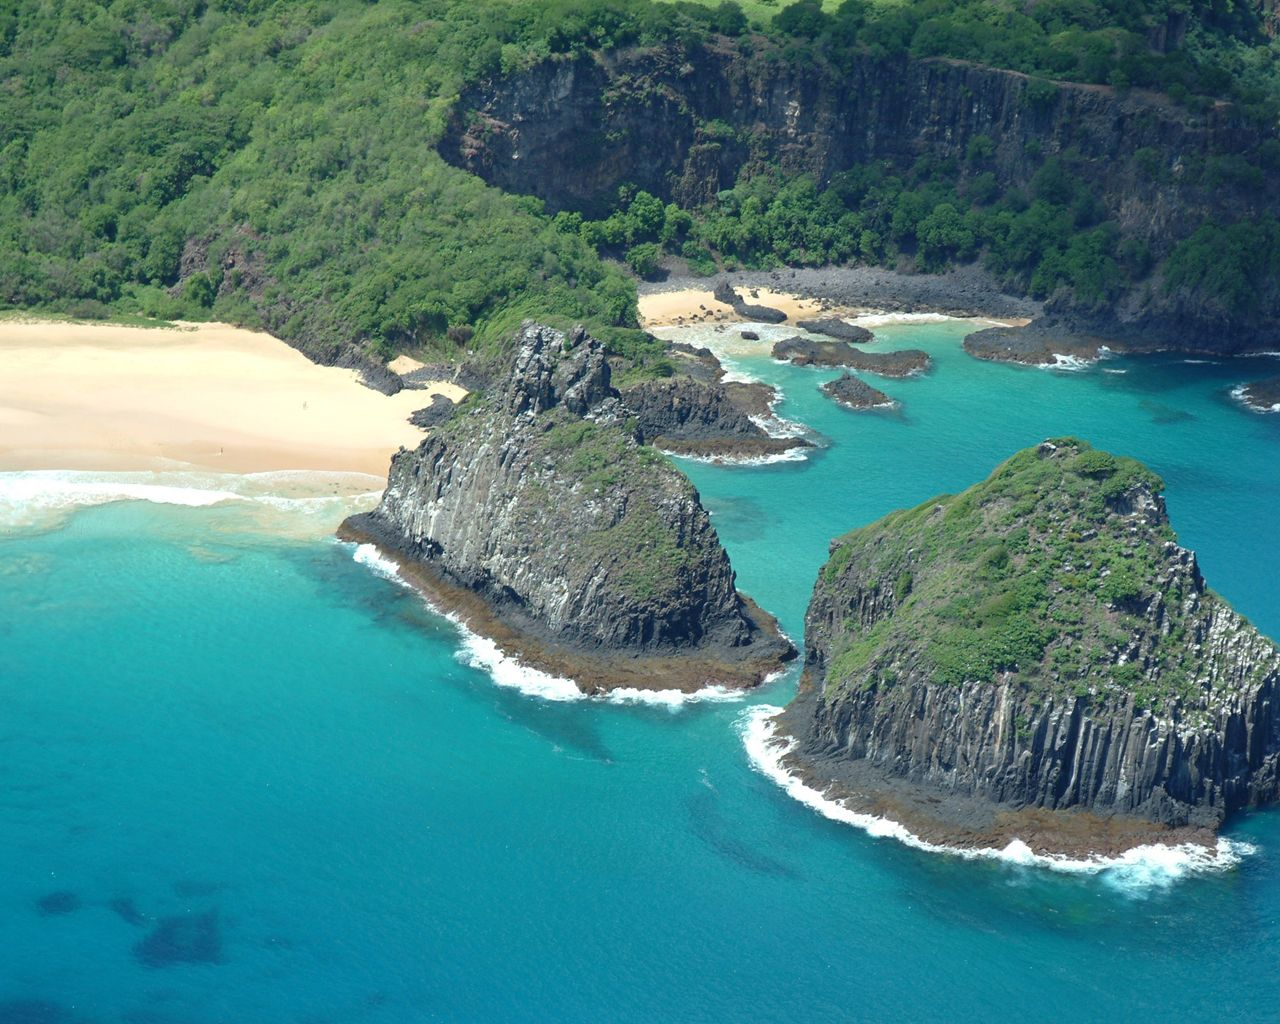 fernando de noronha fotos - Google Search